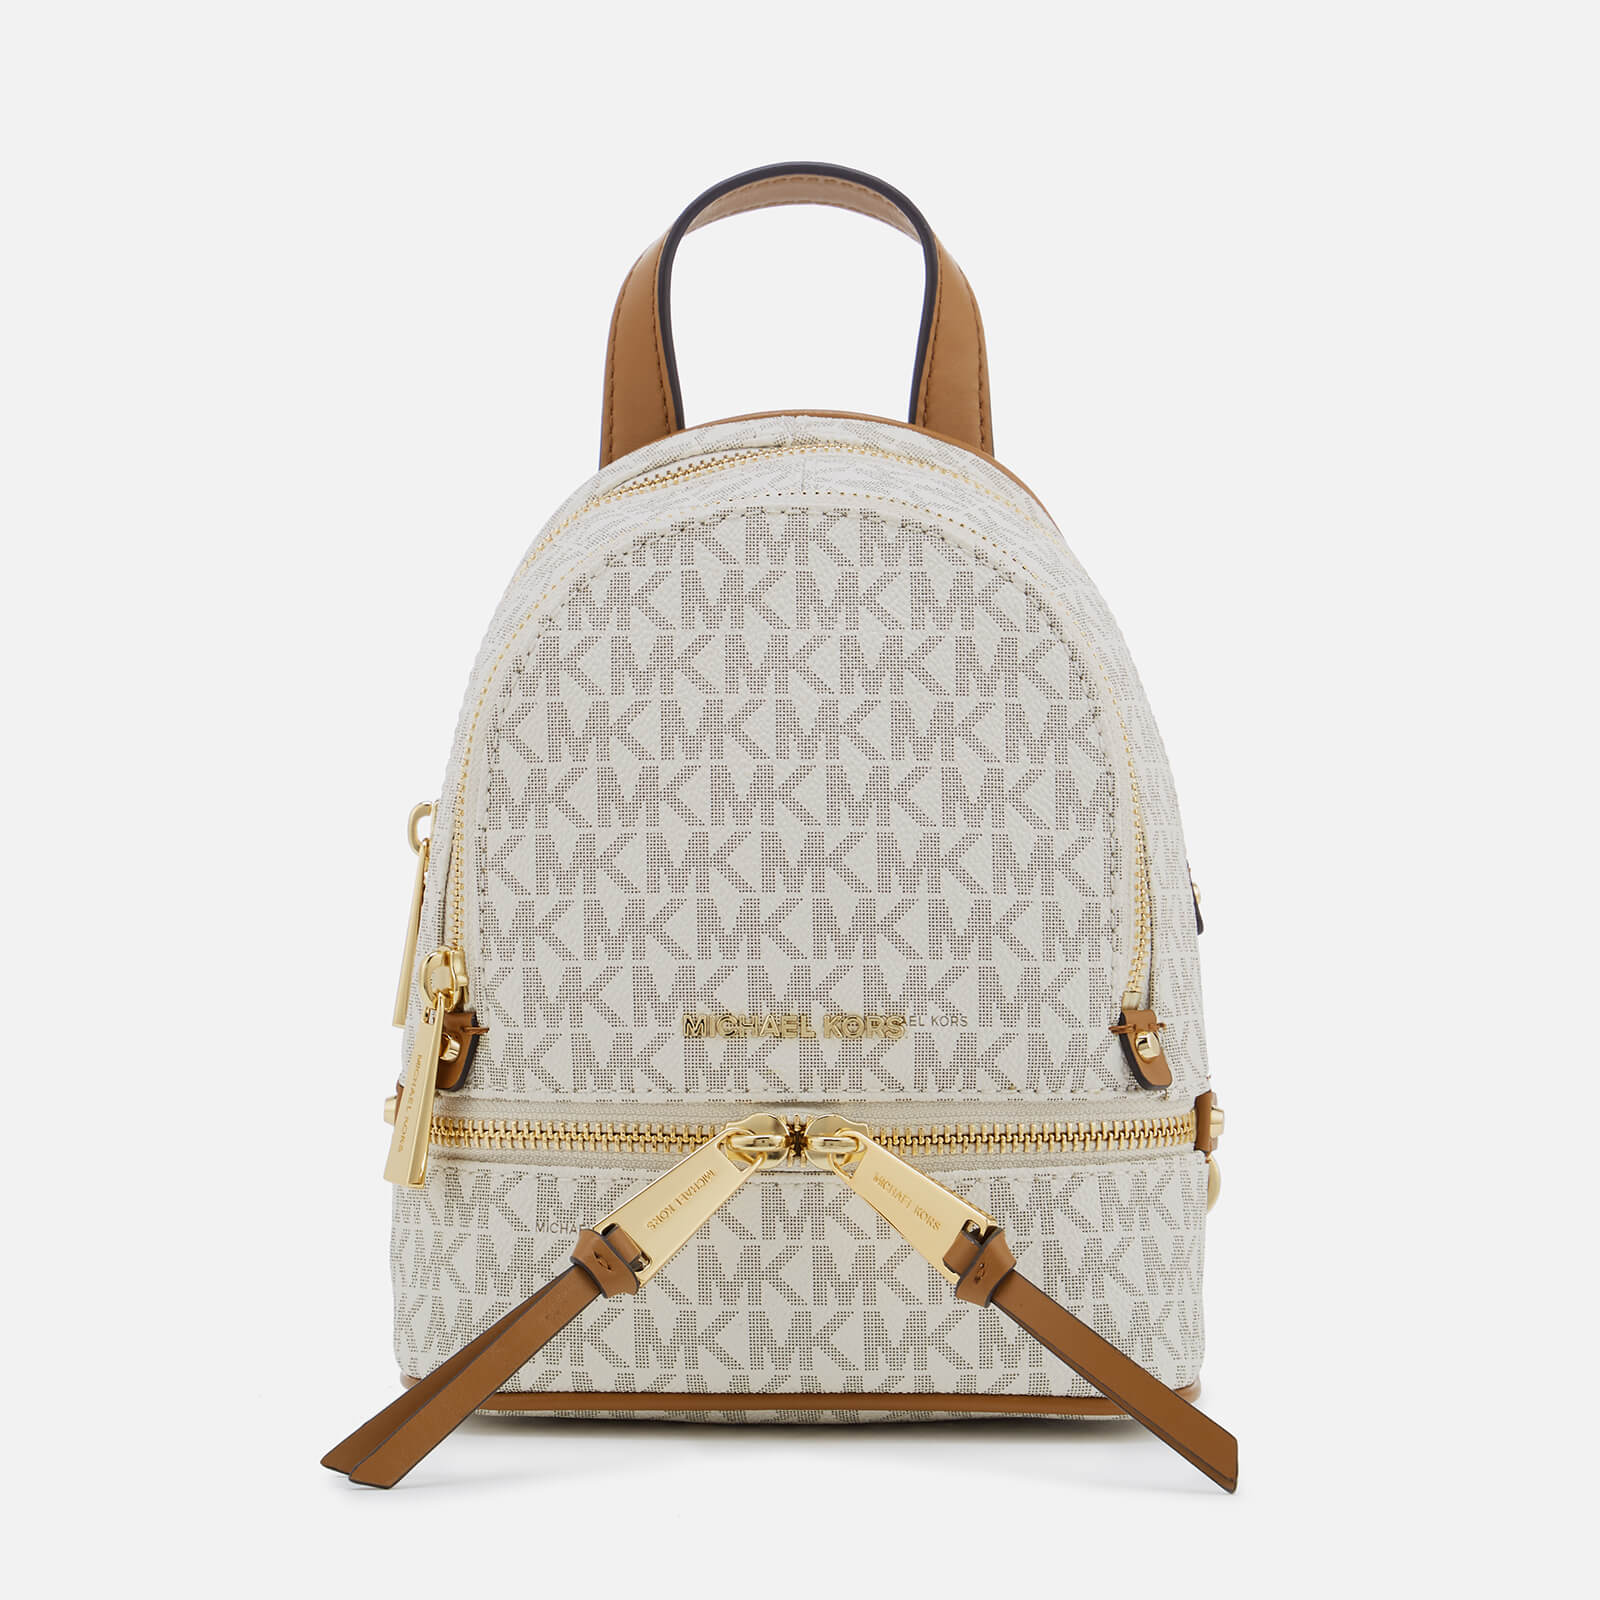 e94c6e4a46f1 MICHAEL MICHAEL KORS Women's Extra Small Messenger Backpack - Vanilla -  Free UK Delivery over £50